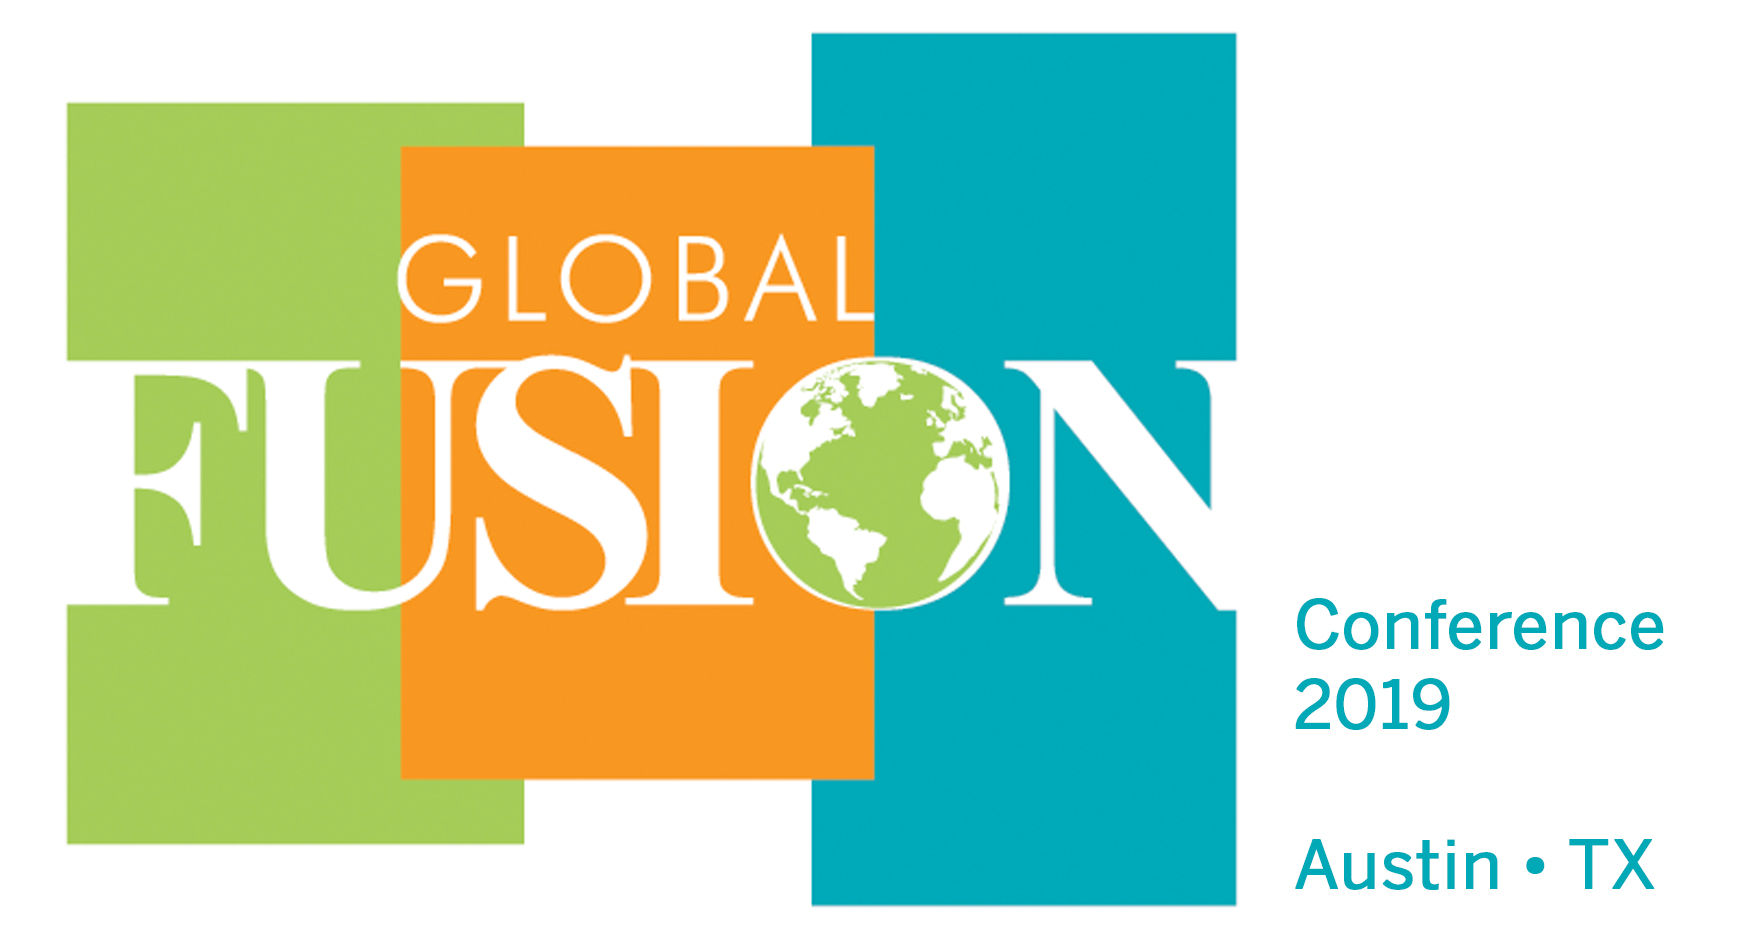 Global Fusion Conference 2019